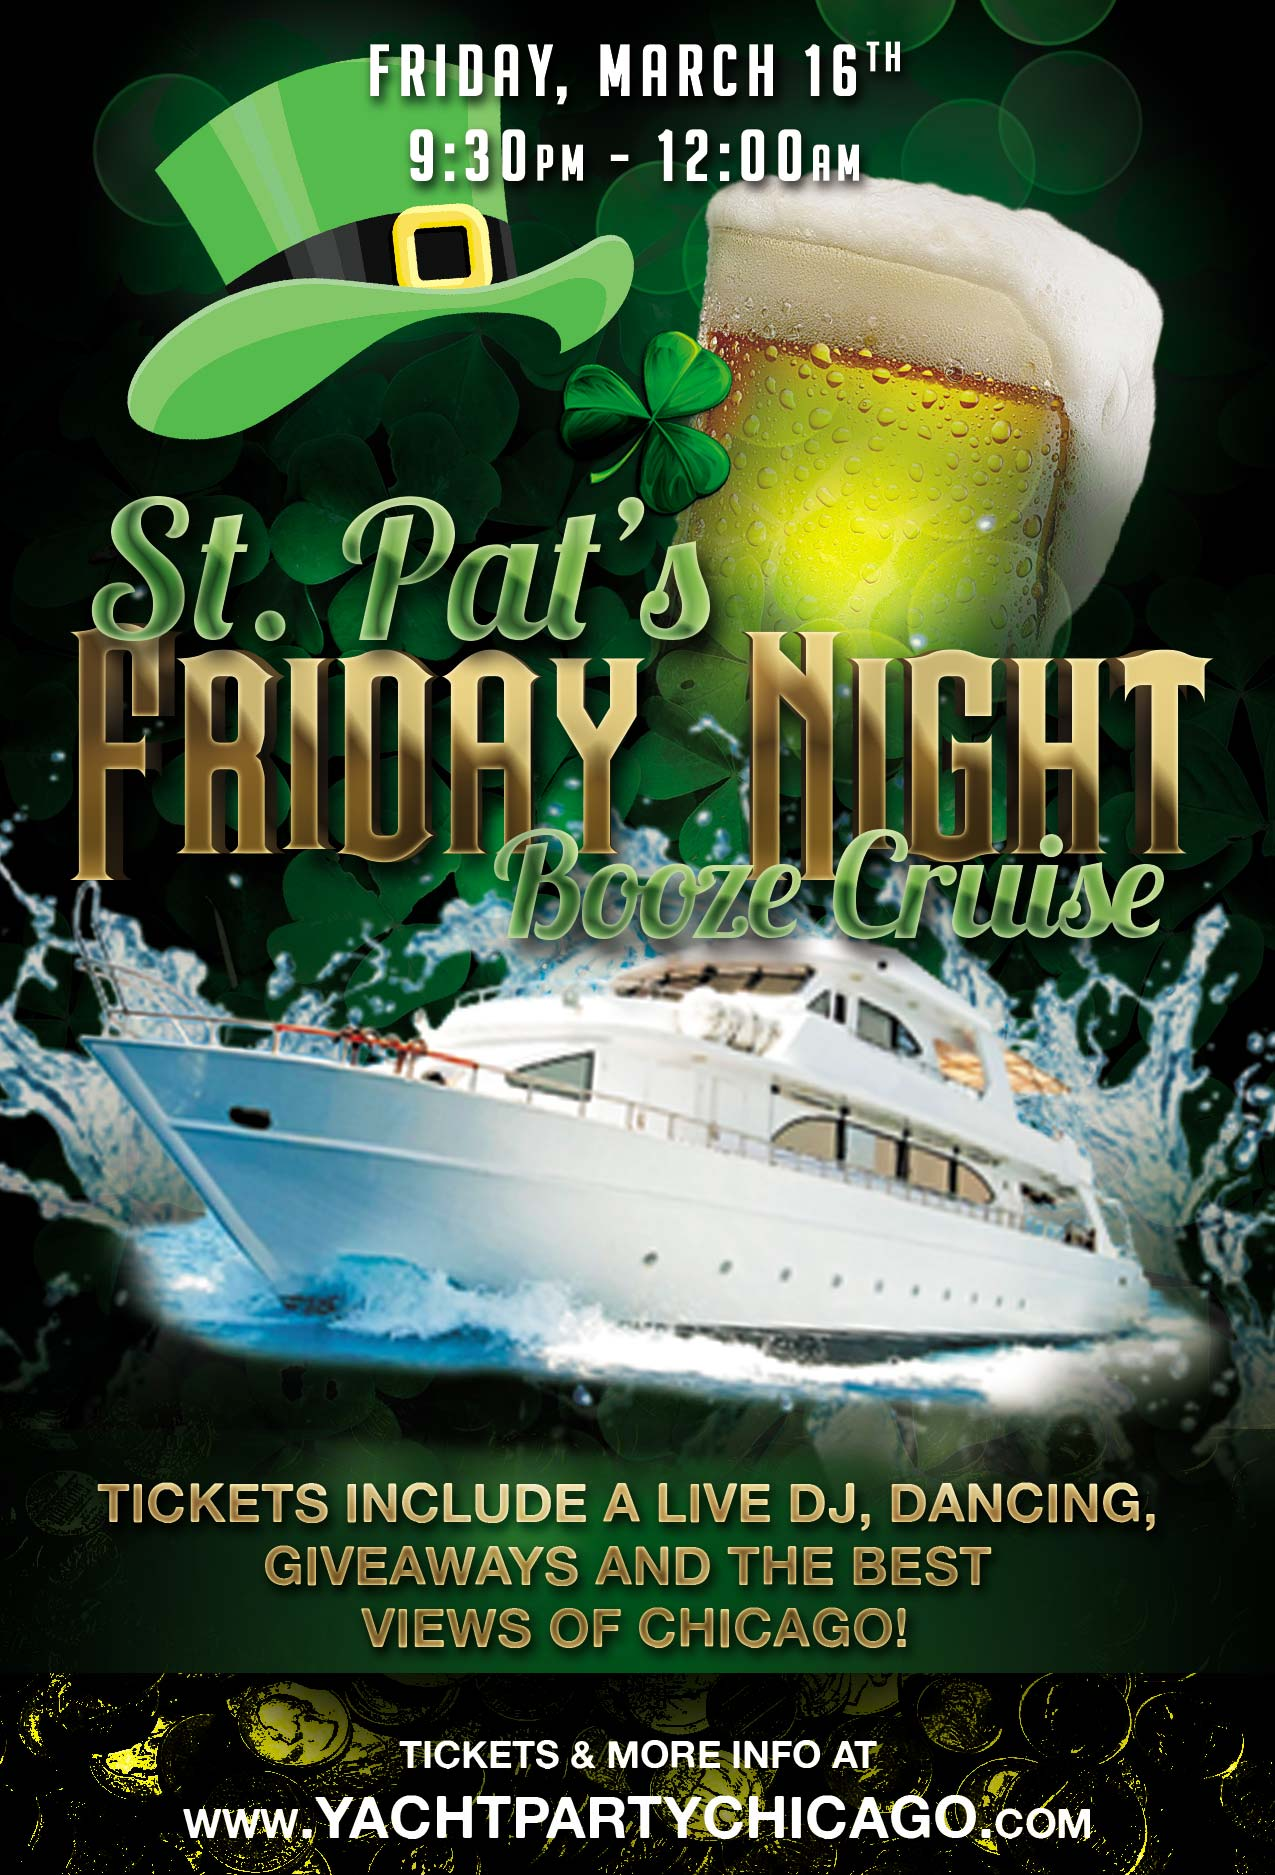 St. Patrick's Day Friday Night Booze Cruise Party - Tickets include a Live DJ, Dancing, Giveaways, and the best views of Chicago!